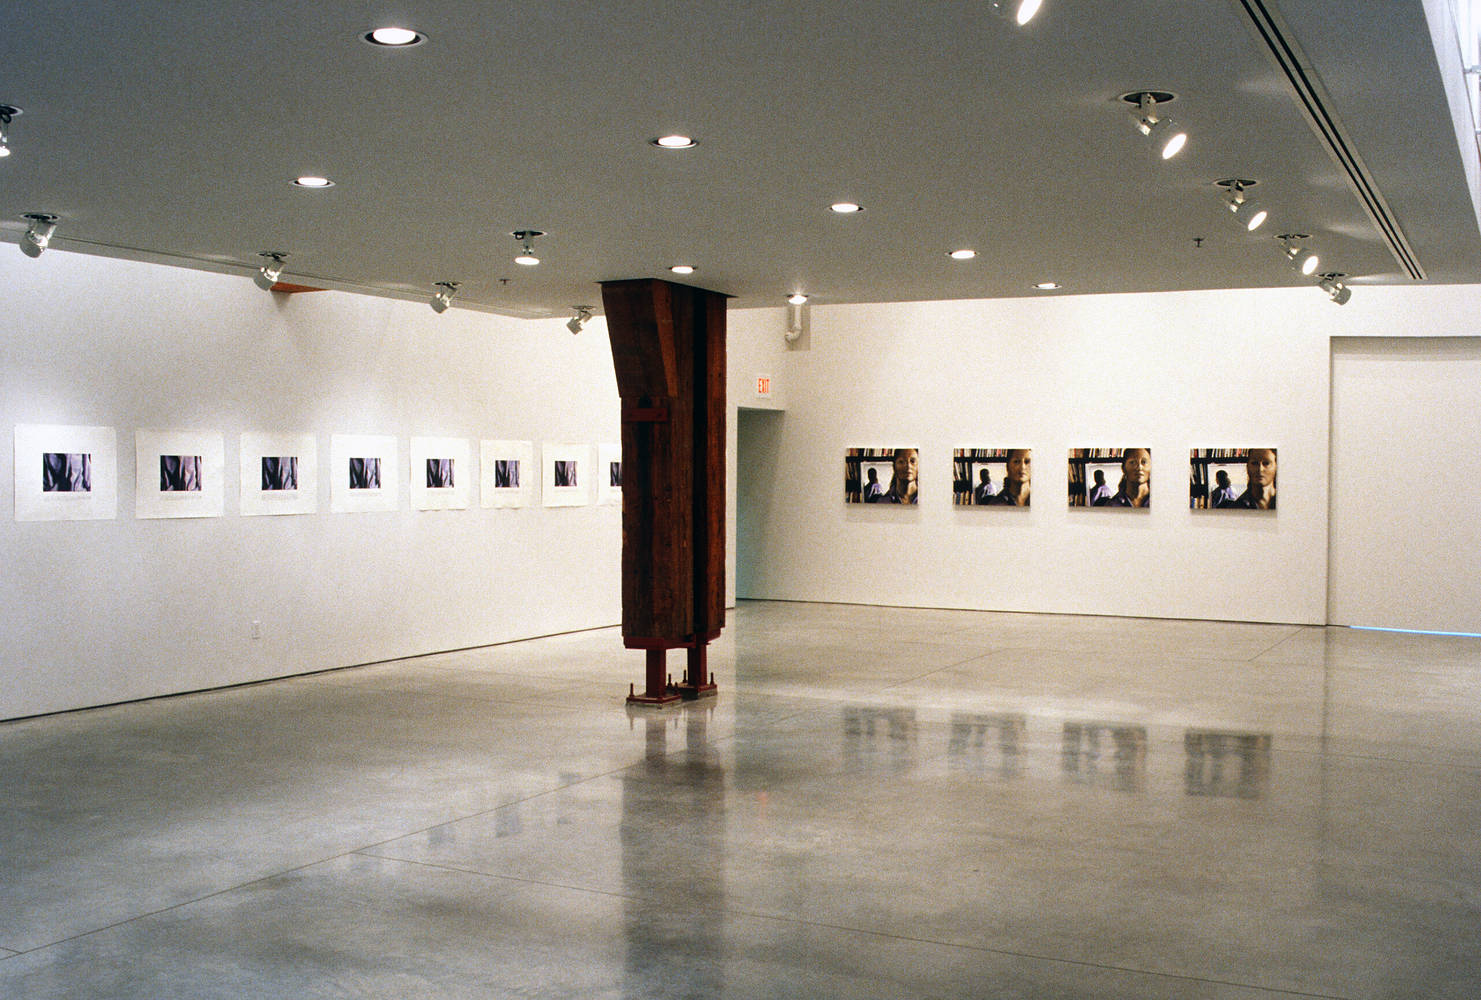 Charles H. Scott Gallery Installation 1994 by Monique Fouquet